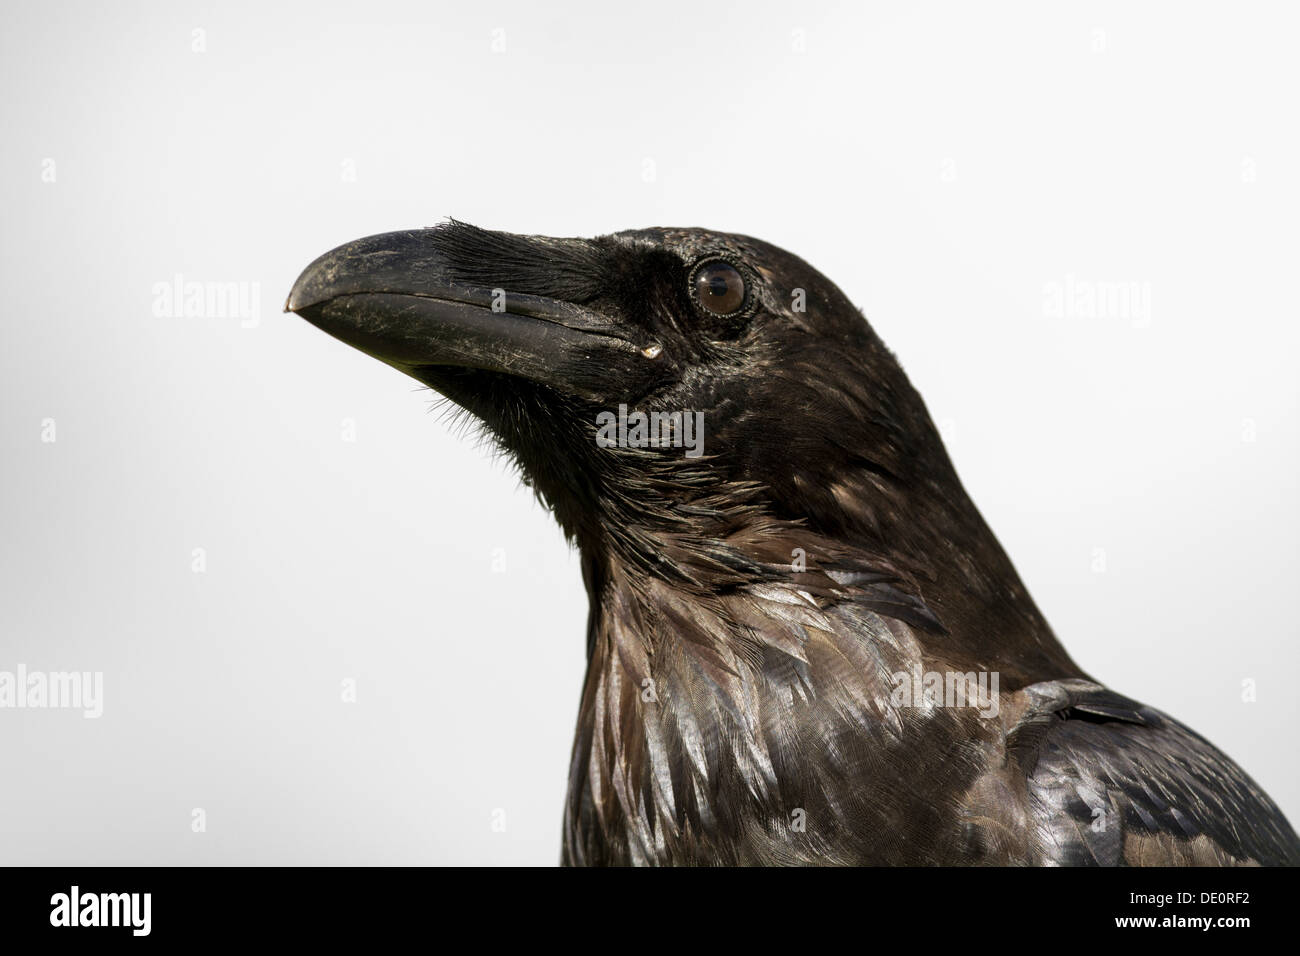 Close up of powerful head and beak of a Raven, Corvus corax. Captive bird. - Stock Image